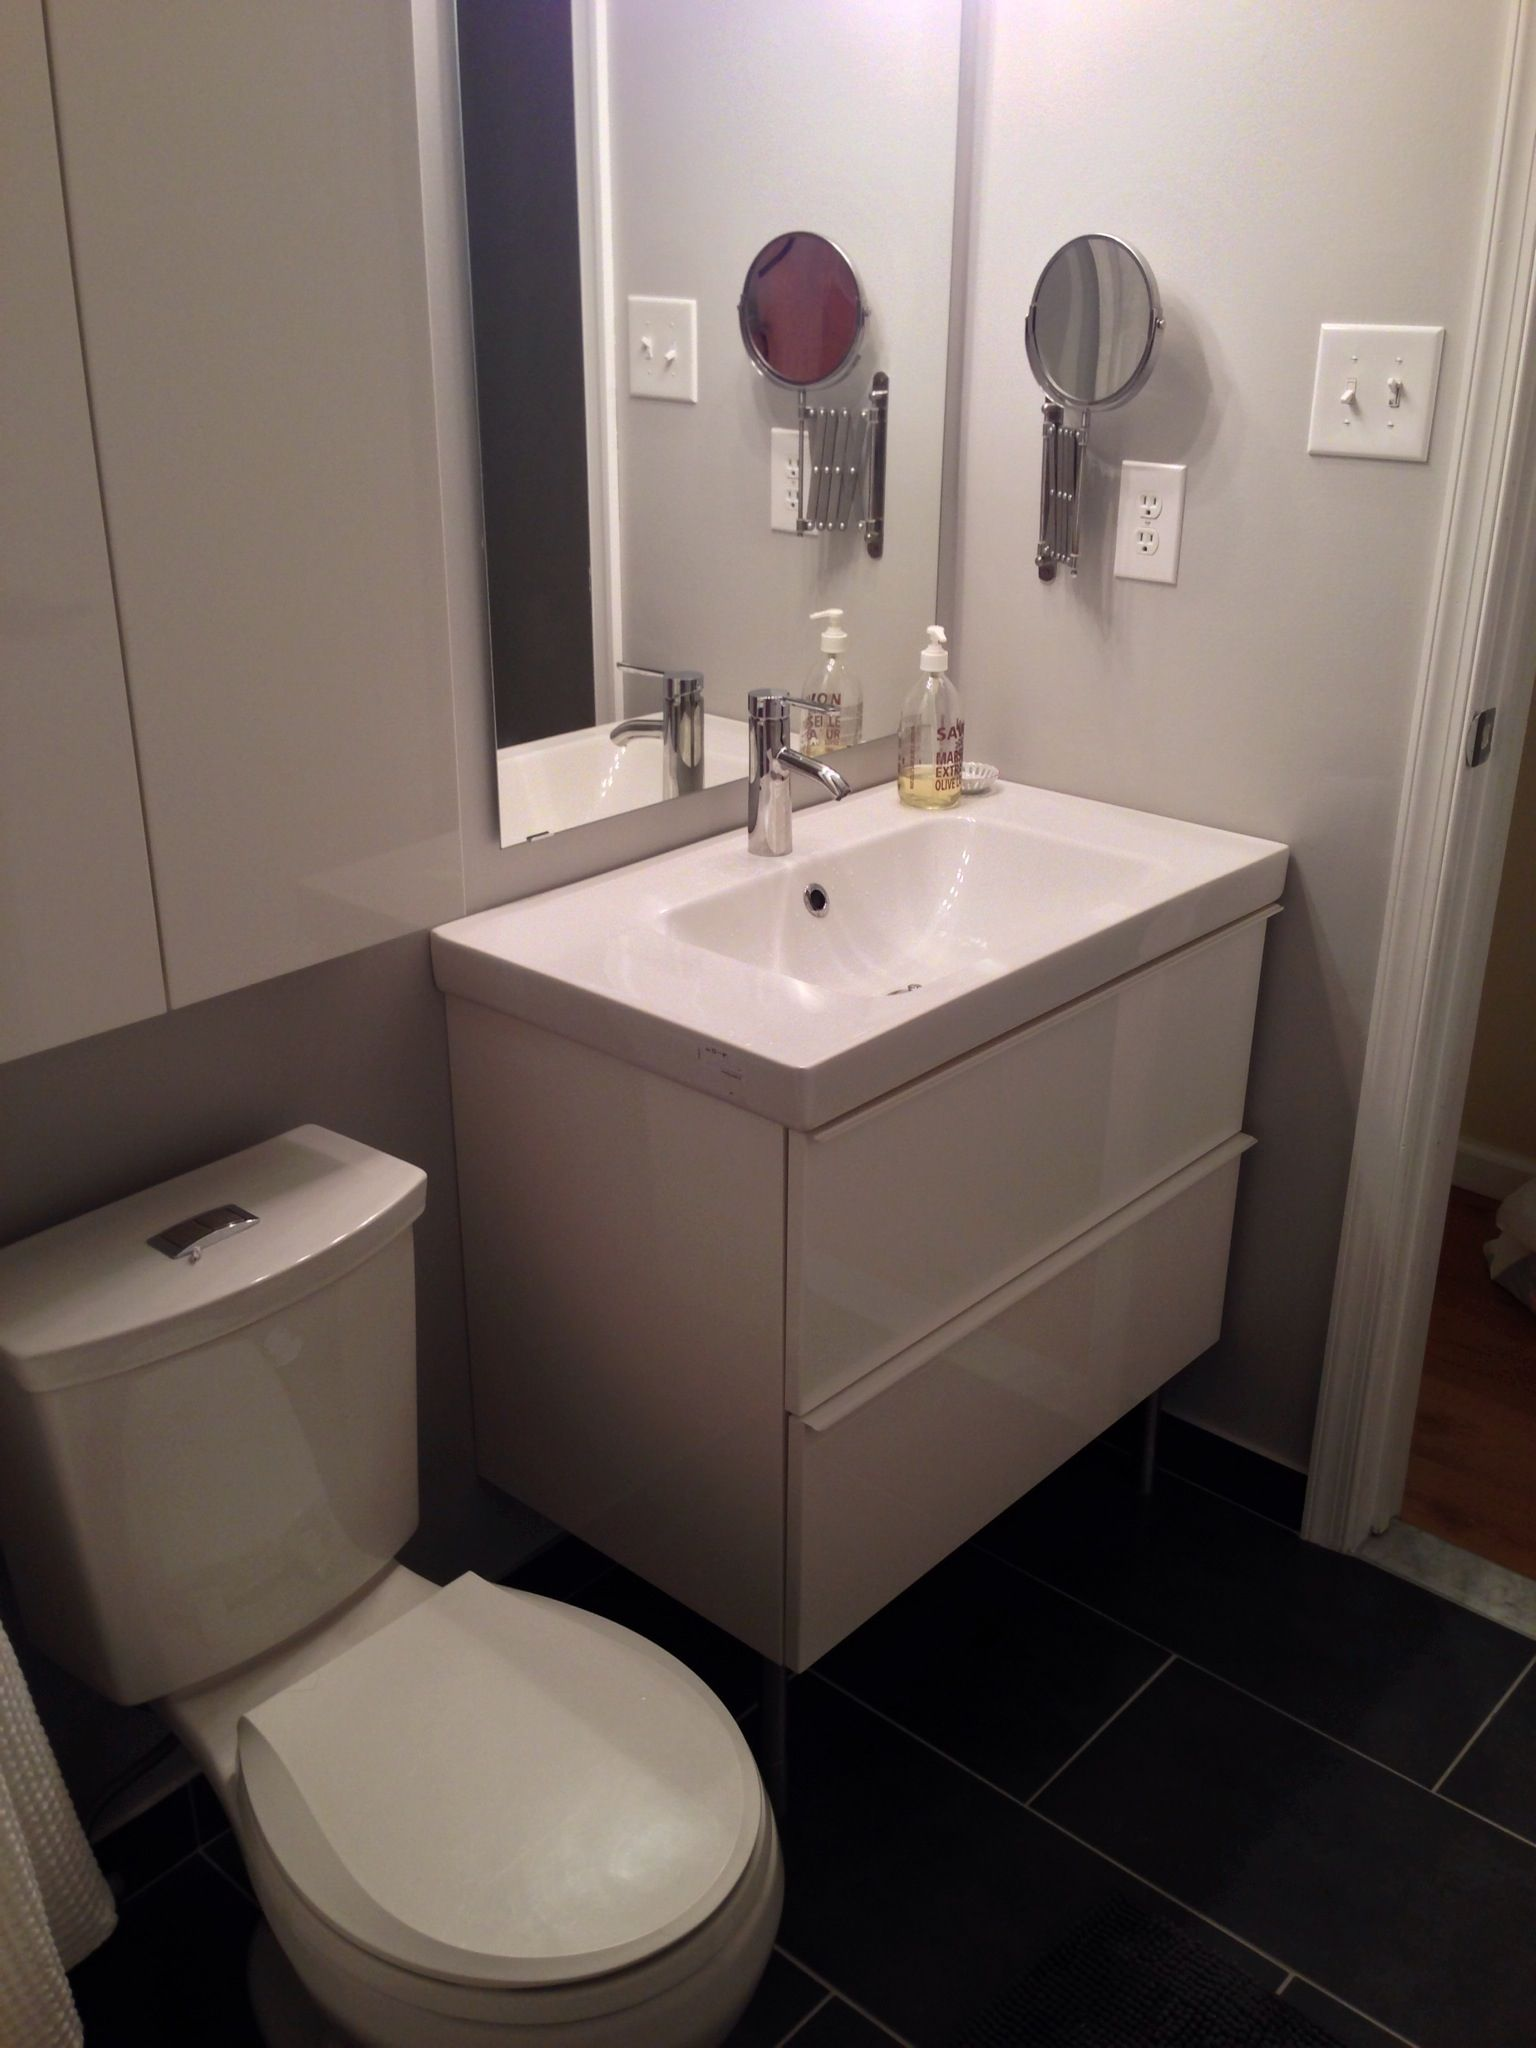 Inspiring Ikea Bathroom Vanity With Sink Ideas Fascinating White Floating Single And Cabinet Over Toilet In Small E